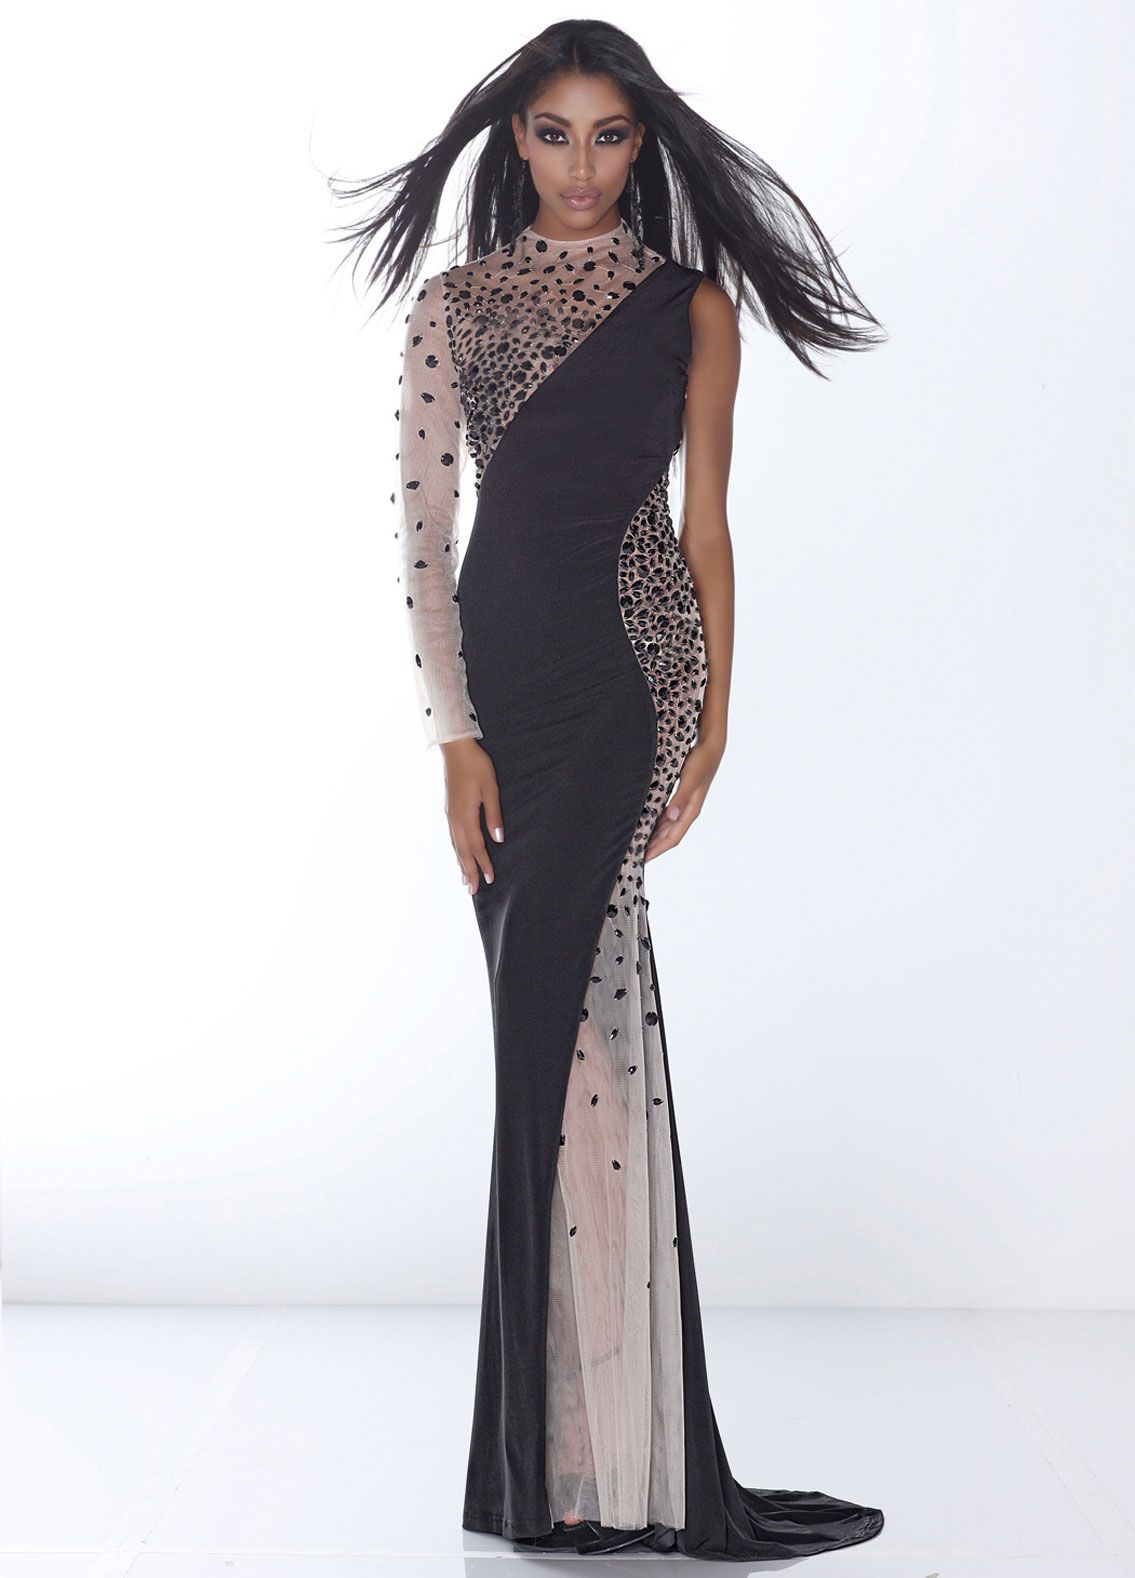 Prom Gowns by Xcite Prom | Xtreme Prom 2014 | Pinterest | Prom ...